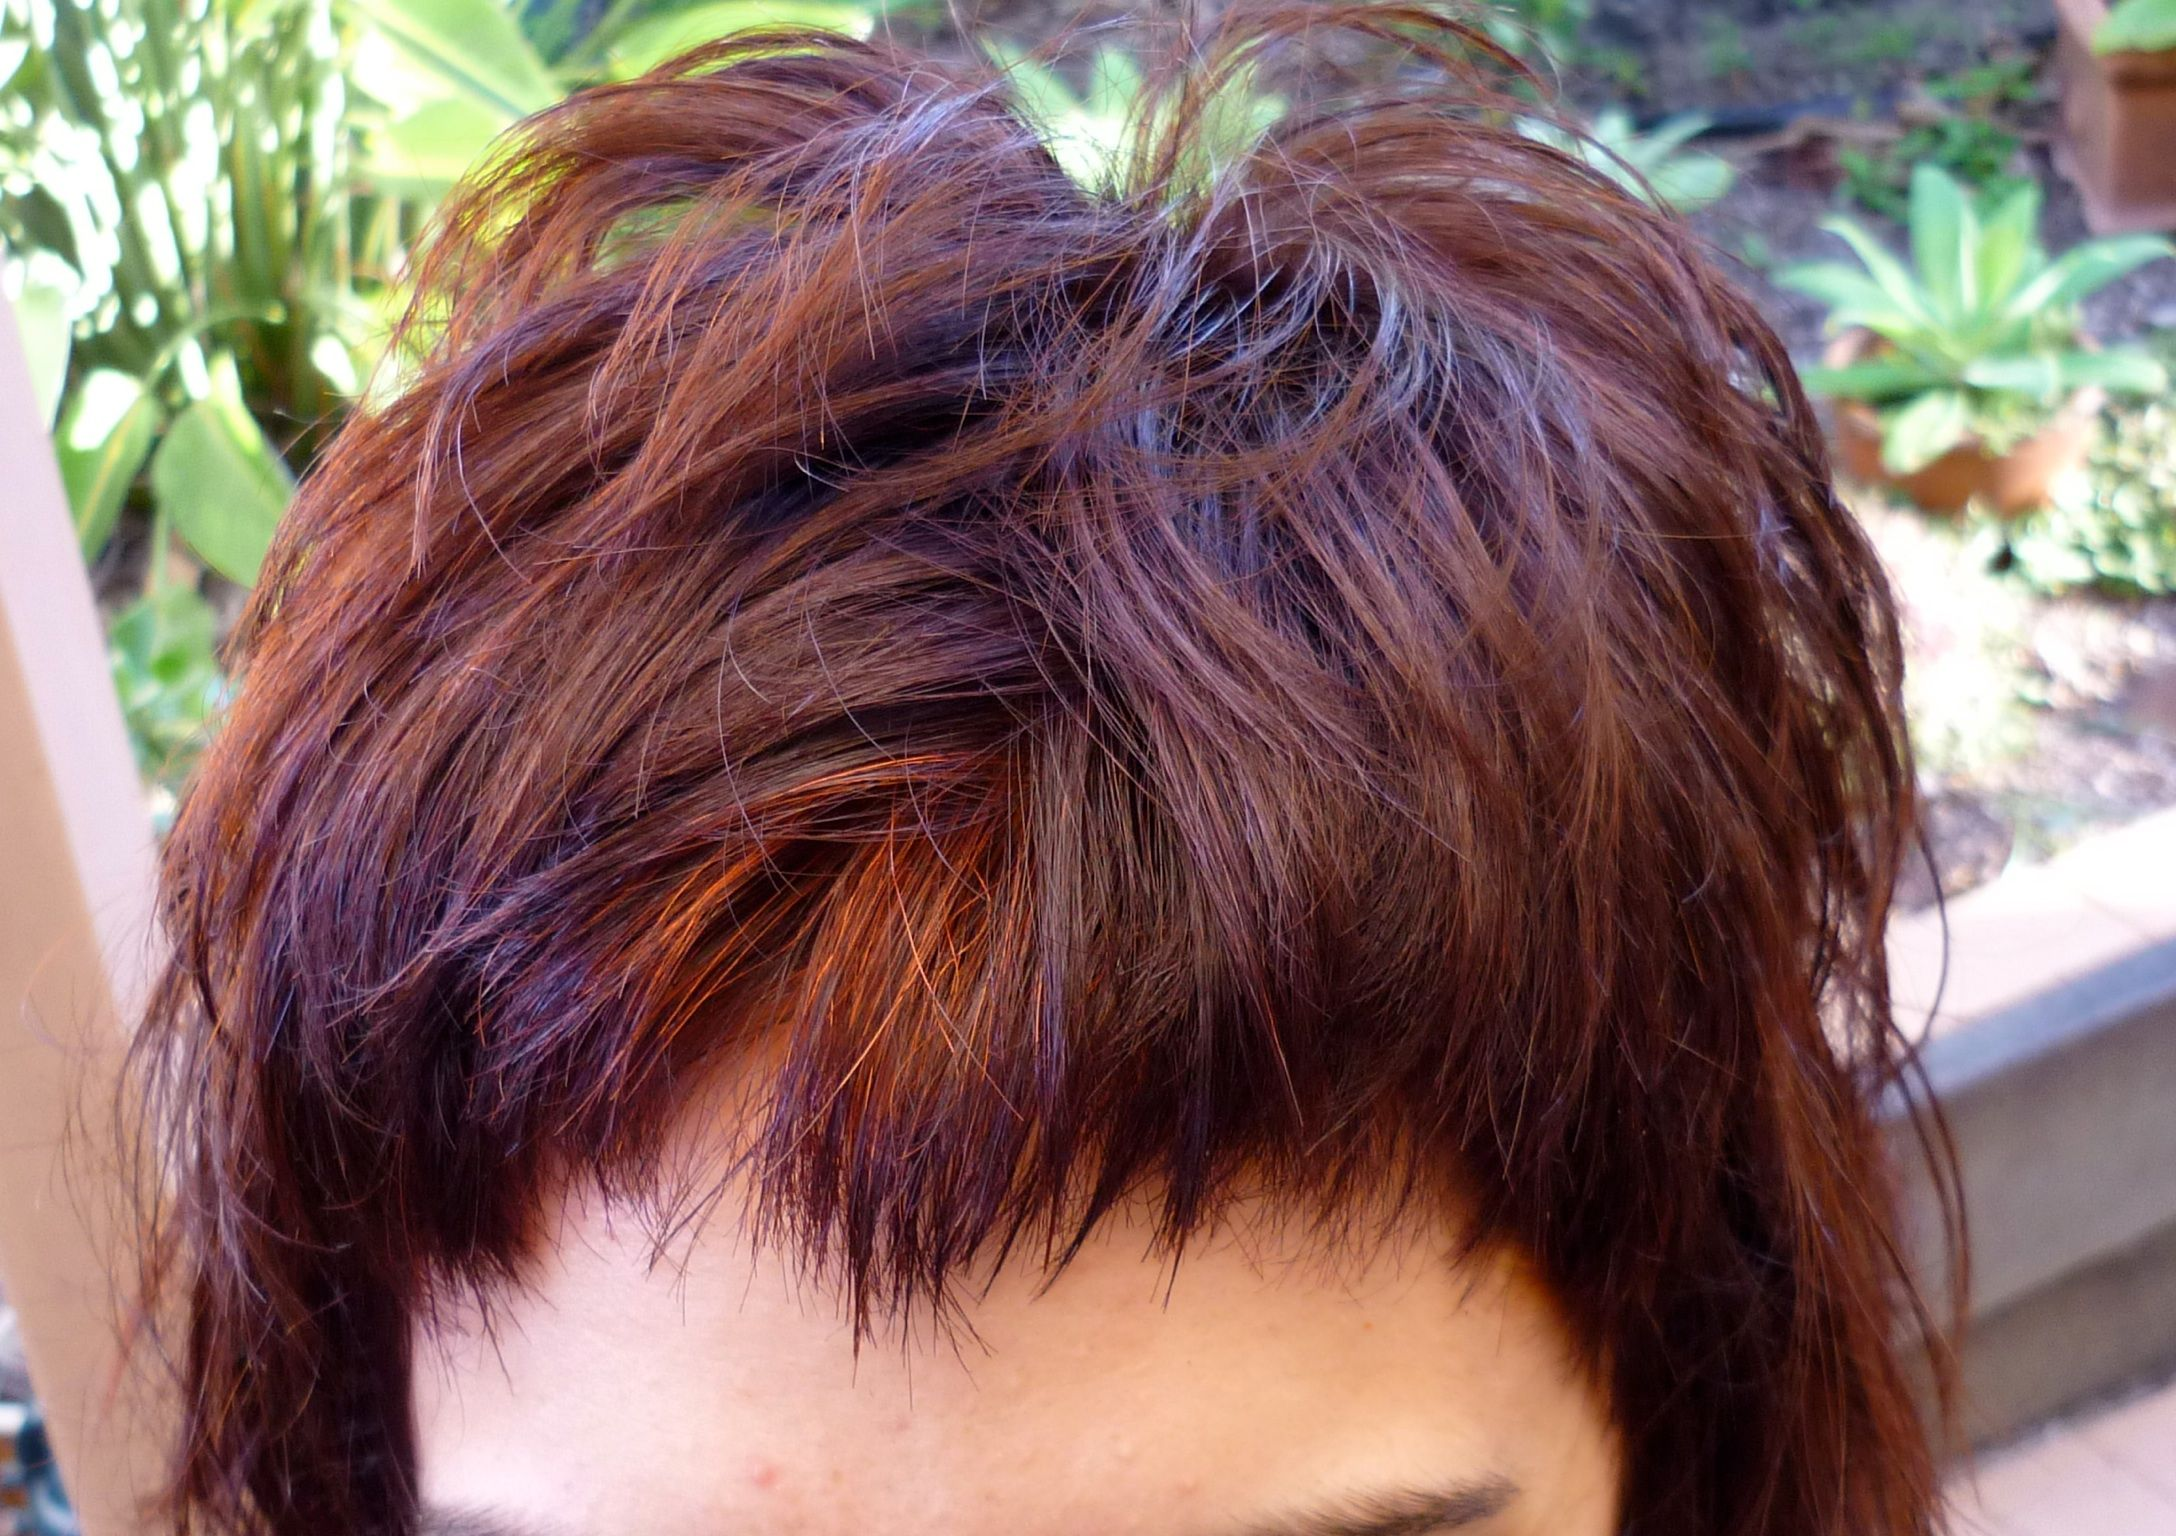 This Is Exactly How My Hair Are With Henna No Need To Go To The